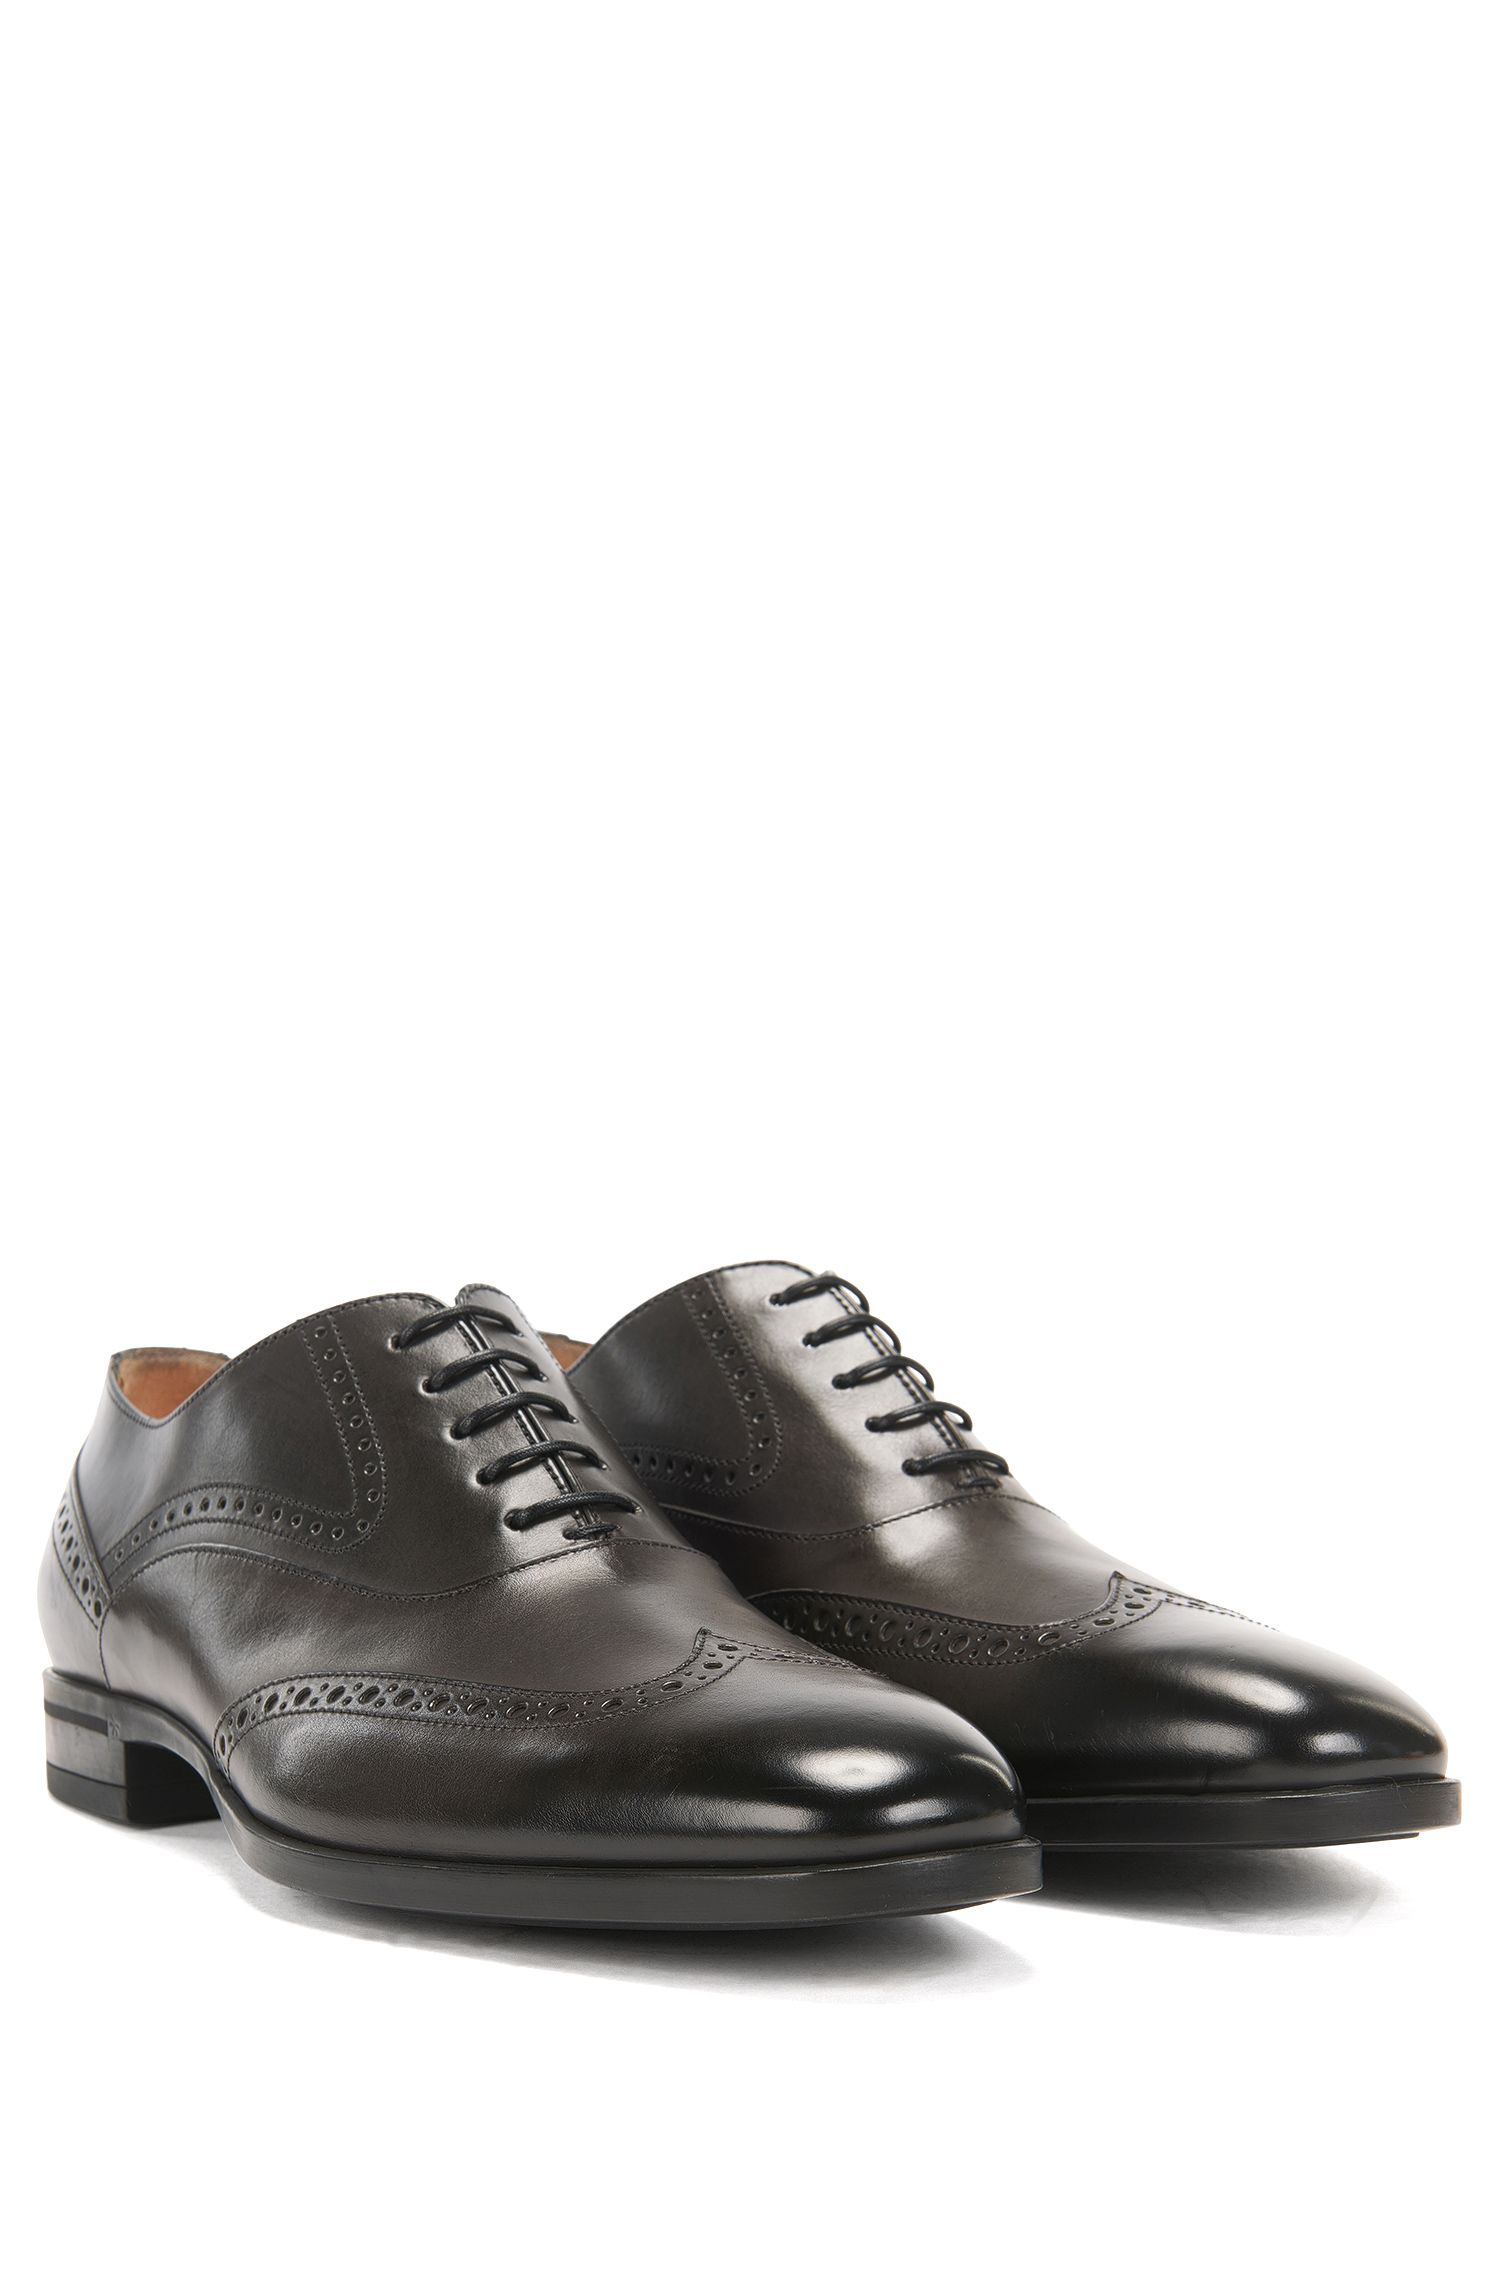 Leather Wingtip Shoe | Kensington Oxfr